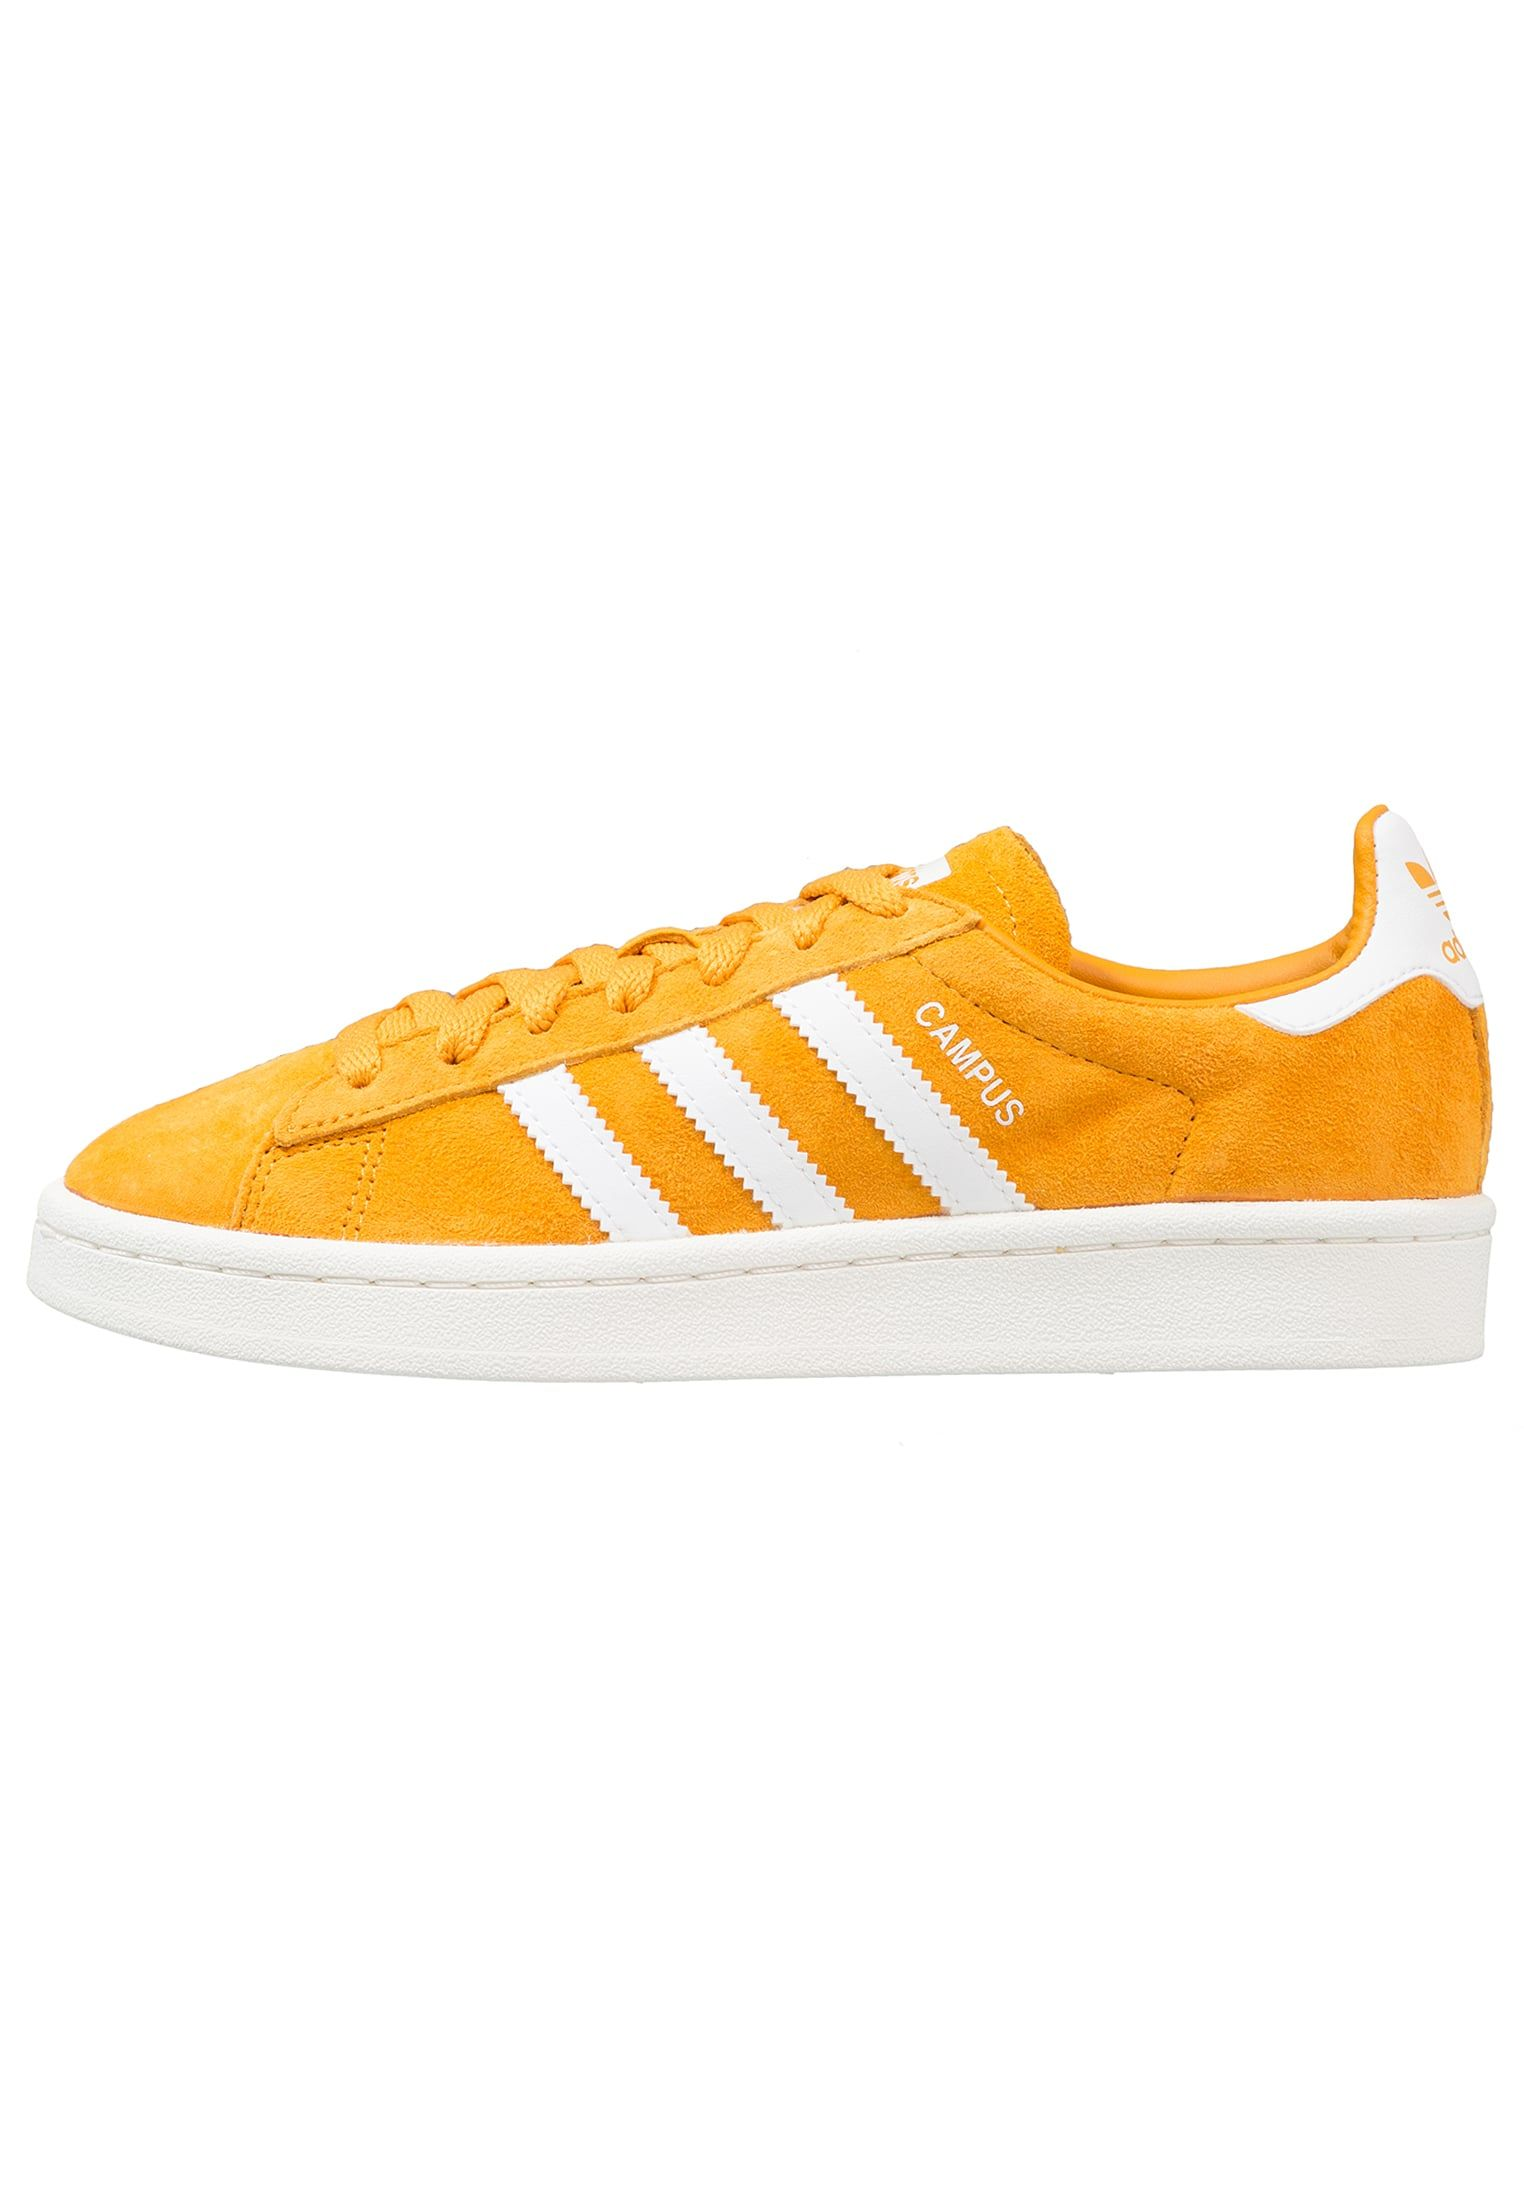 adidas Originals CAMPUS - Baskets basses - tactile yellow/footwear white/chalk  white -